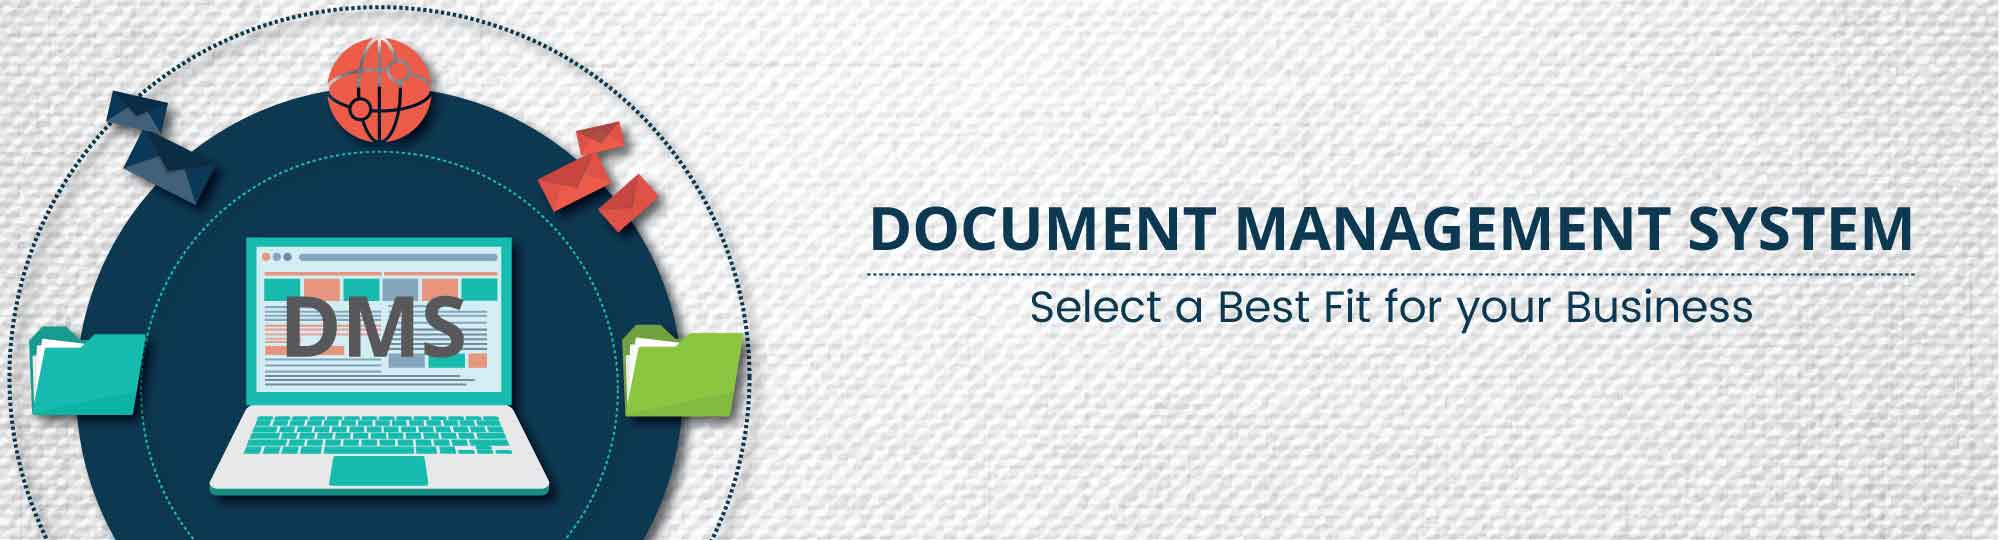 Document-Management-System---Select-a-Best-Fit-for-your-Business